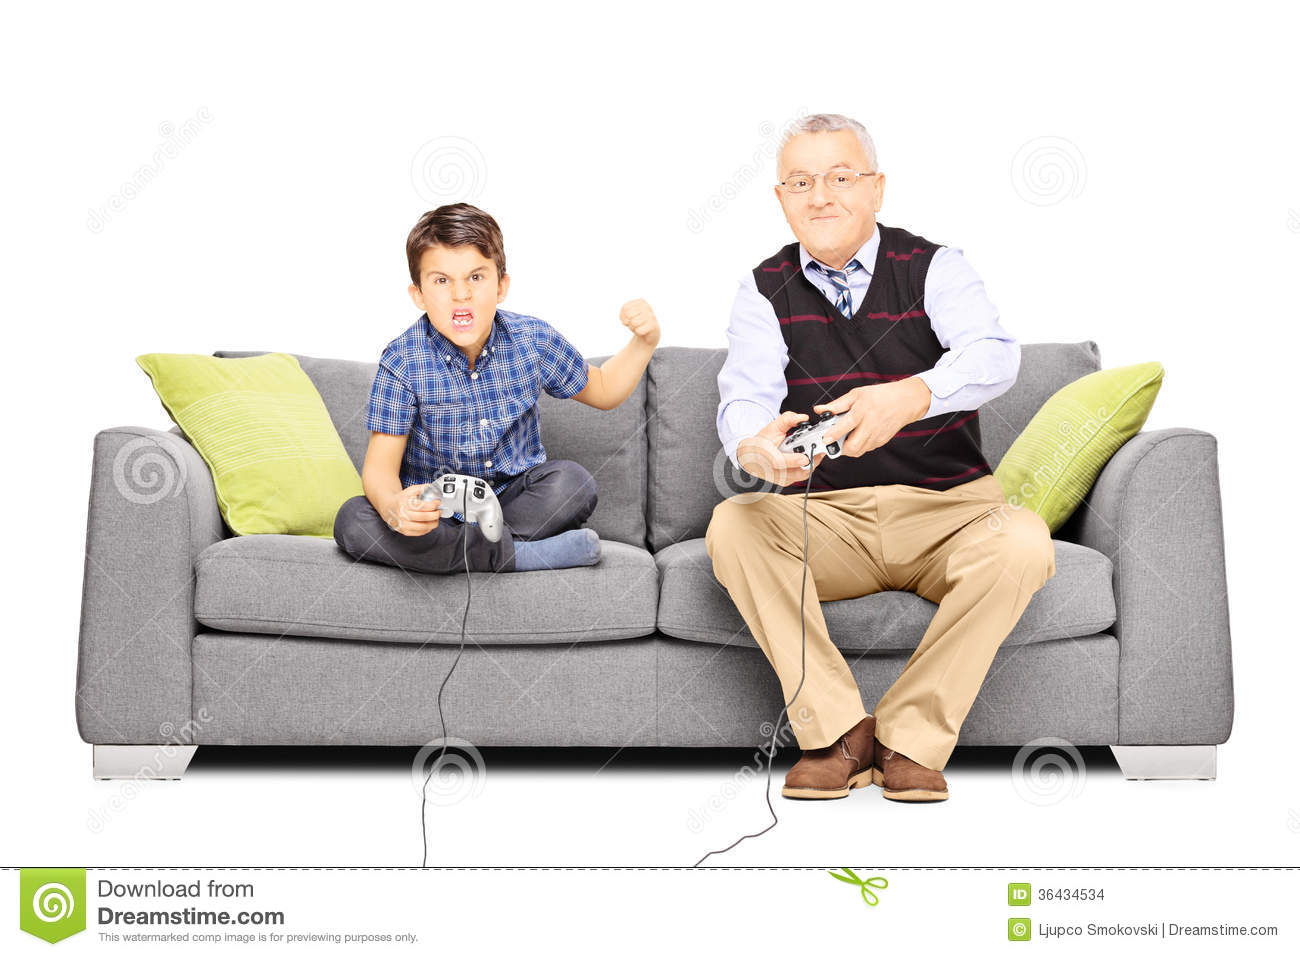 Senior Man Sitting On A Couch And Playing Video Games With  : senior man sitting couch playing video games his n men nephew white background 36434534 from www.dreamstime.com size 1300 x 957 jpeg 120kB